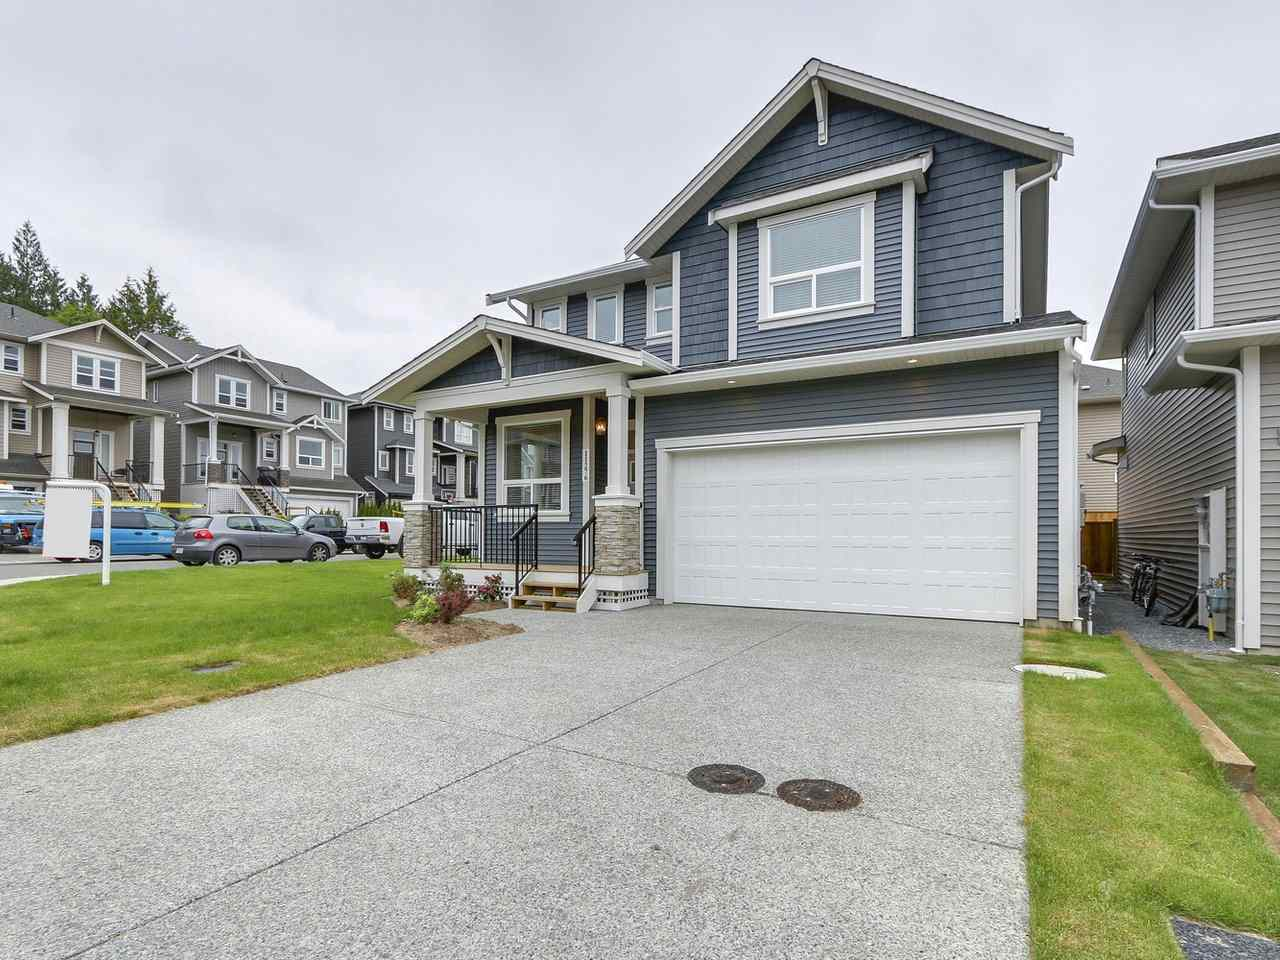 Main Photo: 11276 243A Street in Maple Ridge: Cottonwood MR House for sale : MLS(r) # R2147563